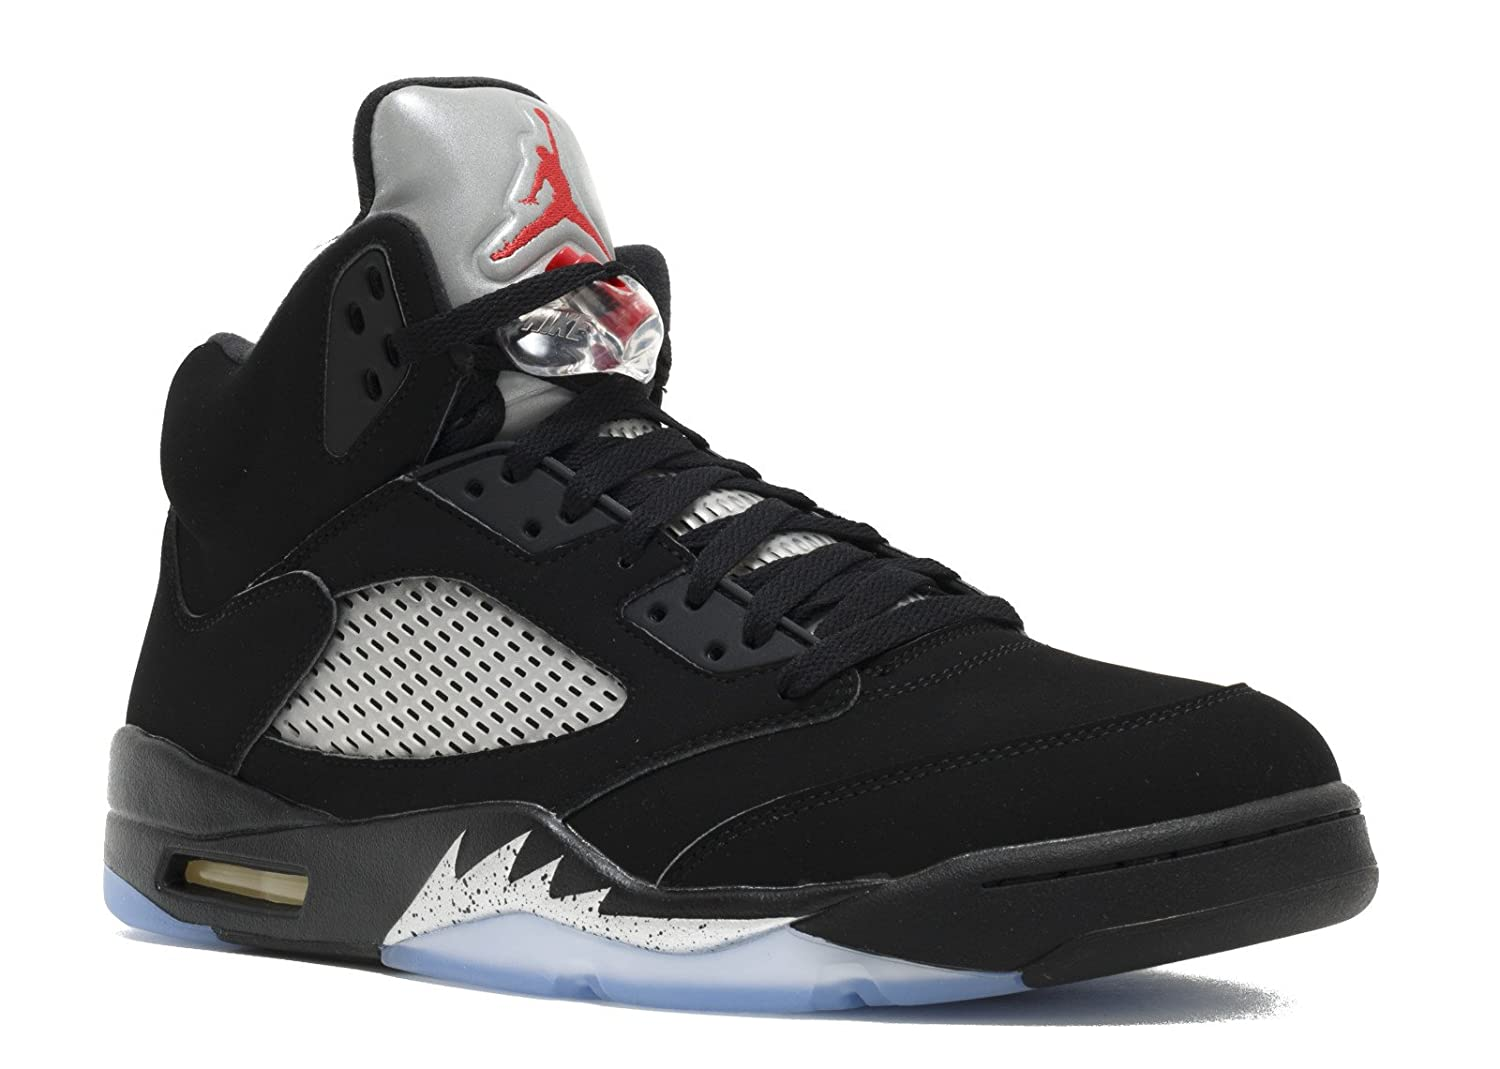 promo code 2f0ee 8a3bf Nike Mens AIR JORDAN 5 RETRO OG, BLACK/FIRE RED-METALLIC SILVER-WHITE, 15